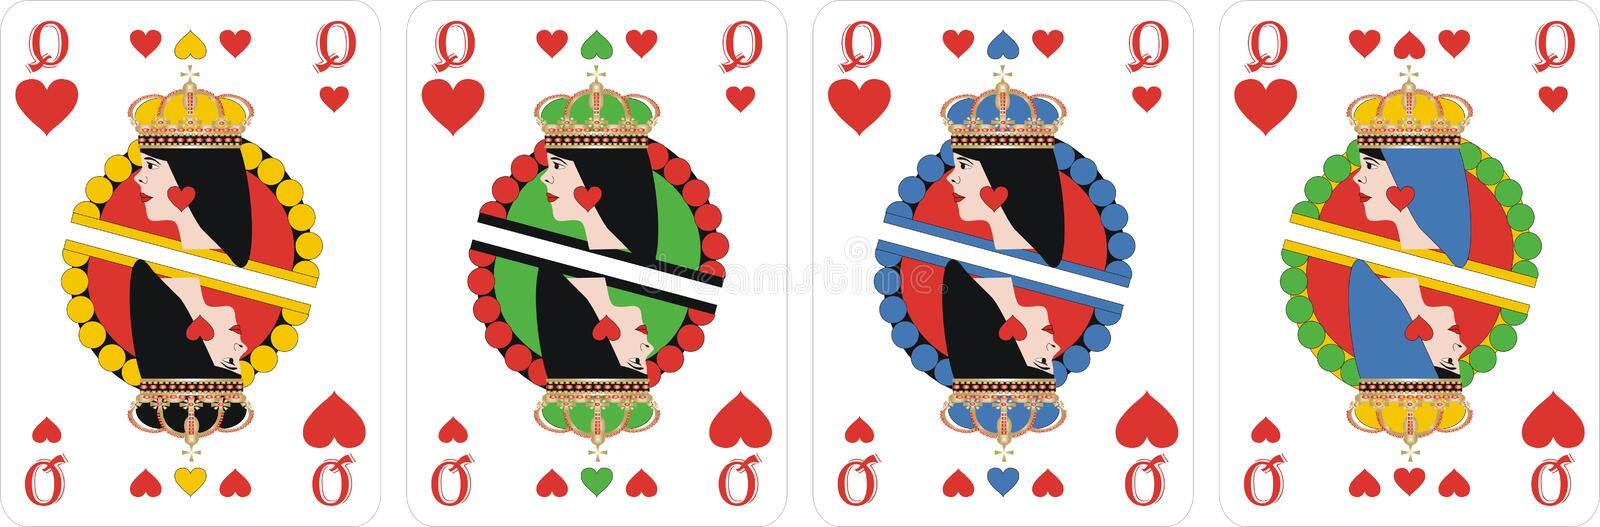 Playing cards heart Queen for rummy and Cassino. Cards for playing for fun and gambling playing cards in cassino - HEARTS and Queens vector illustration